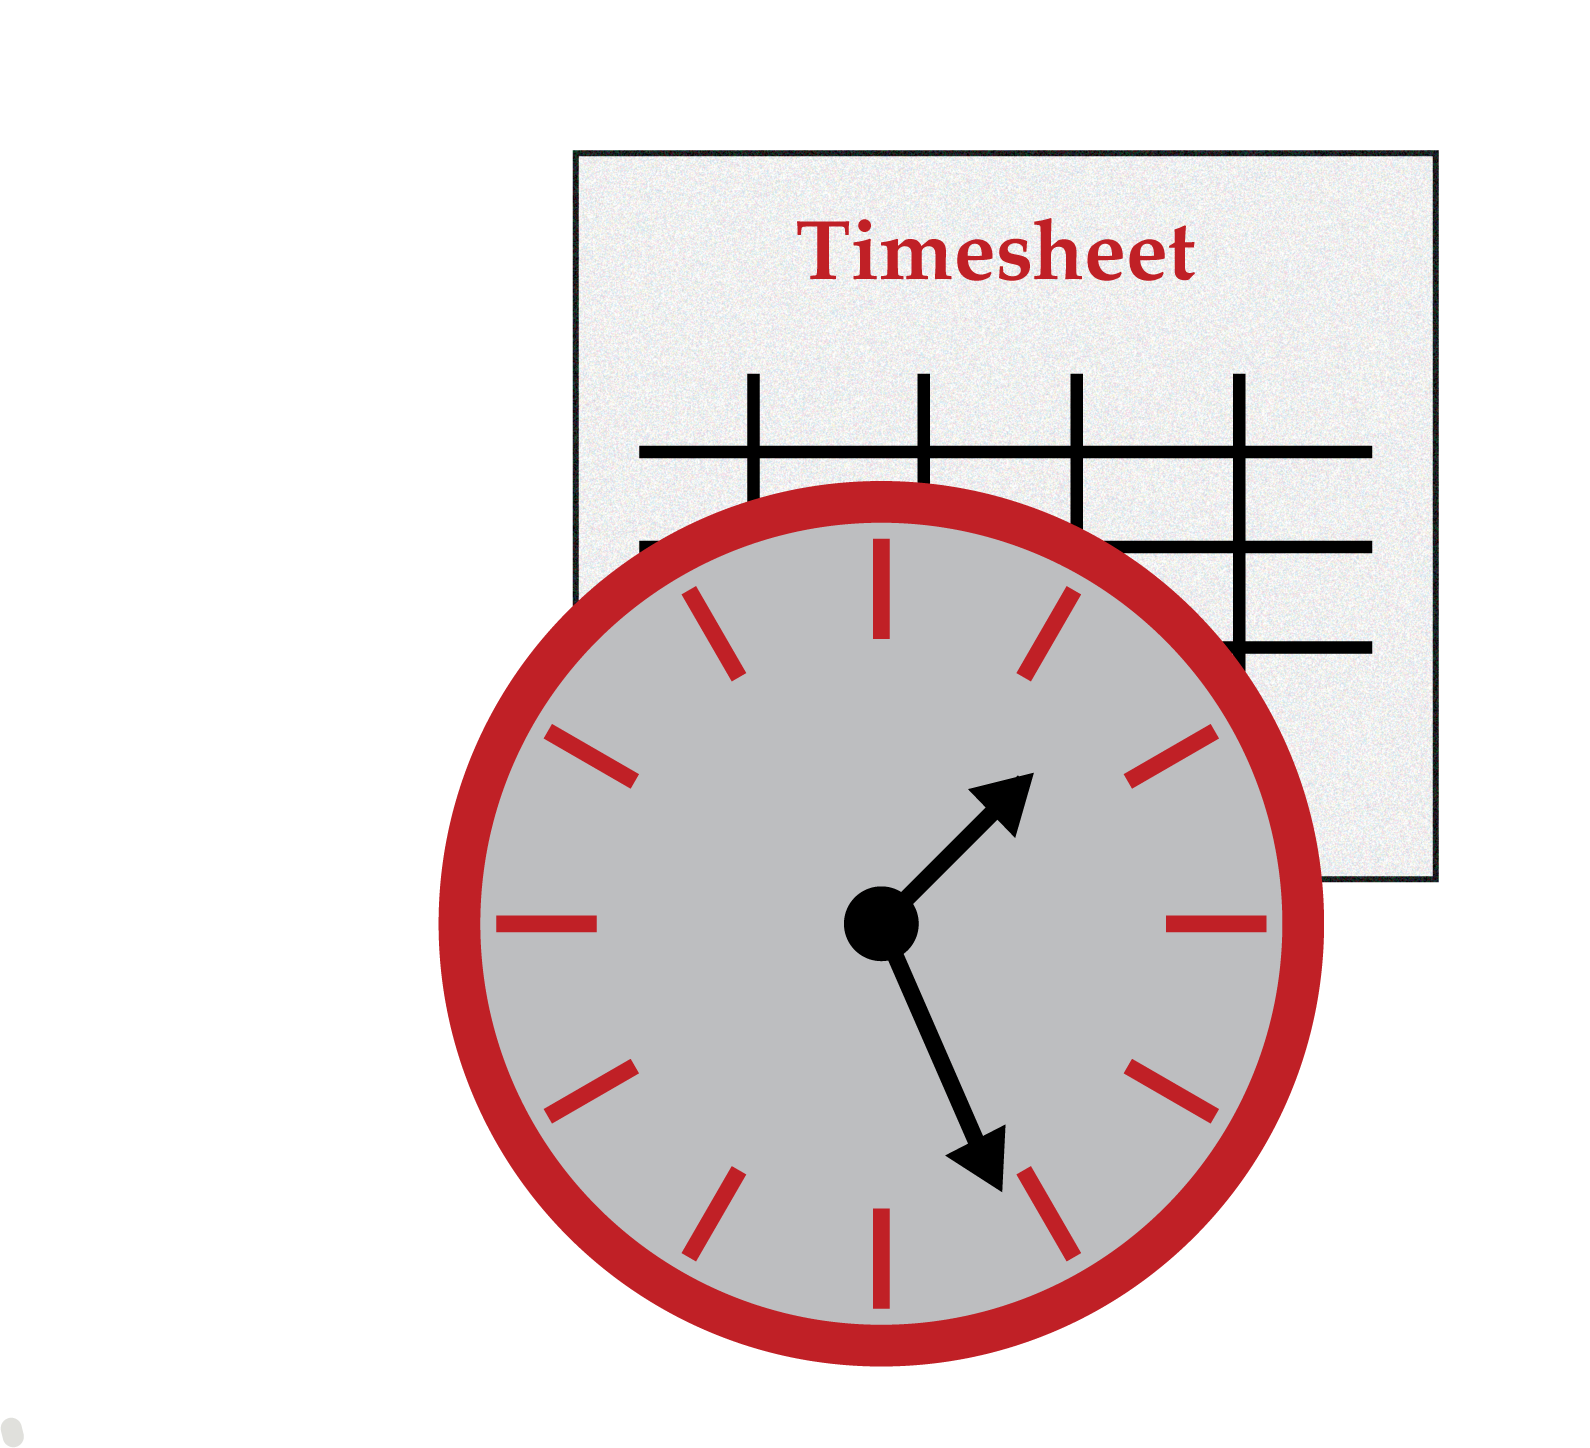 earn better accuracy and working environment with free timesheets